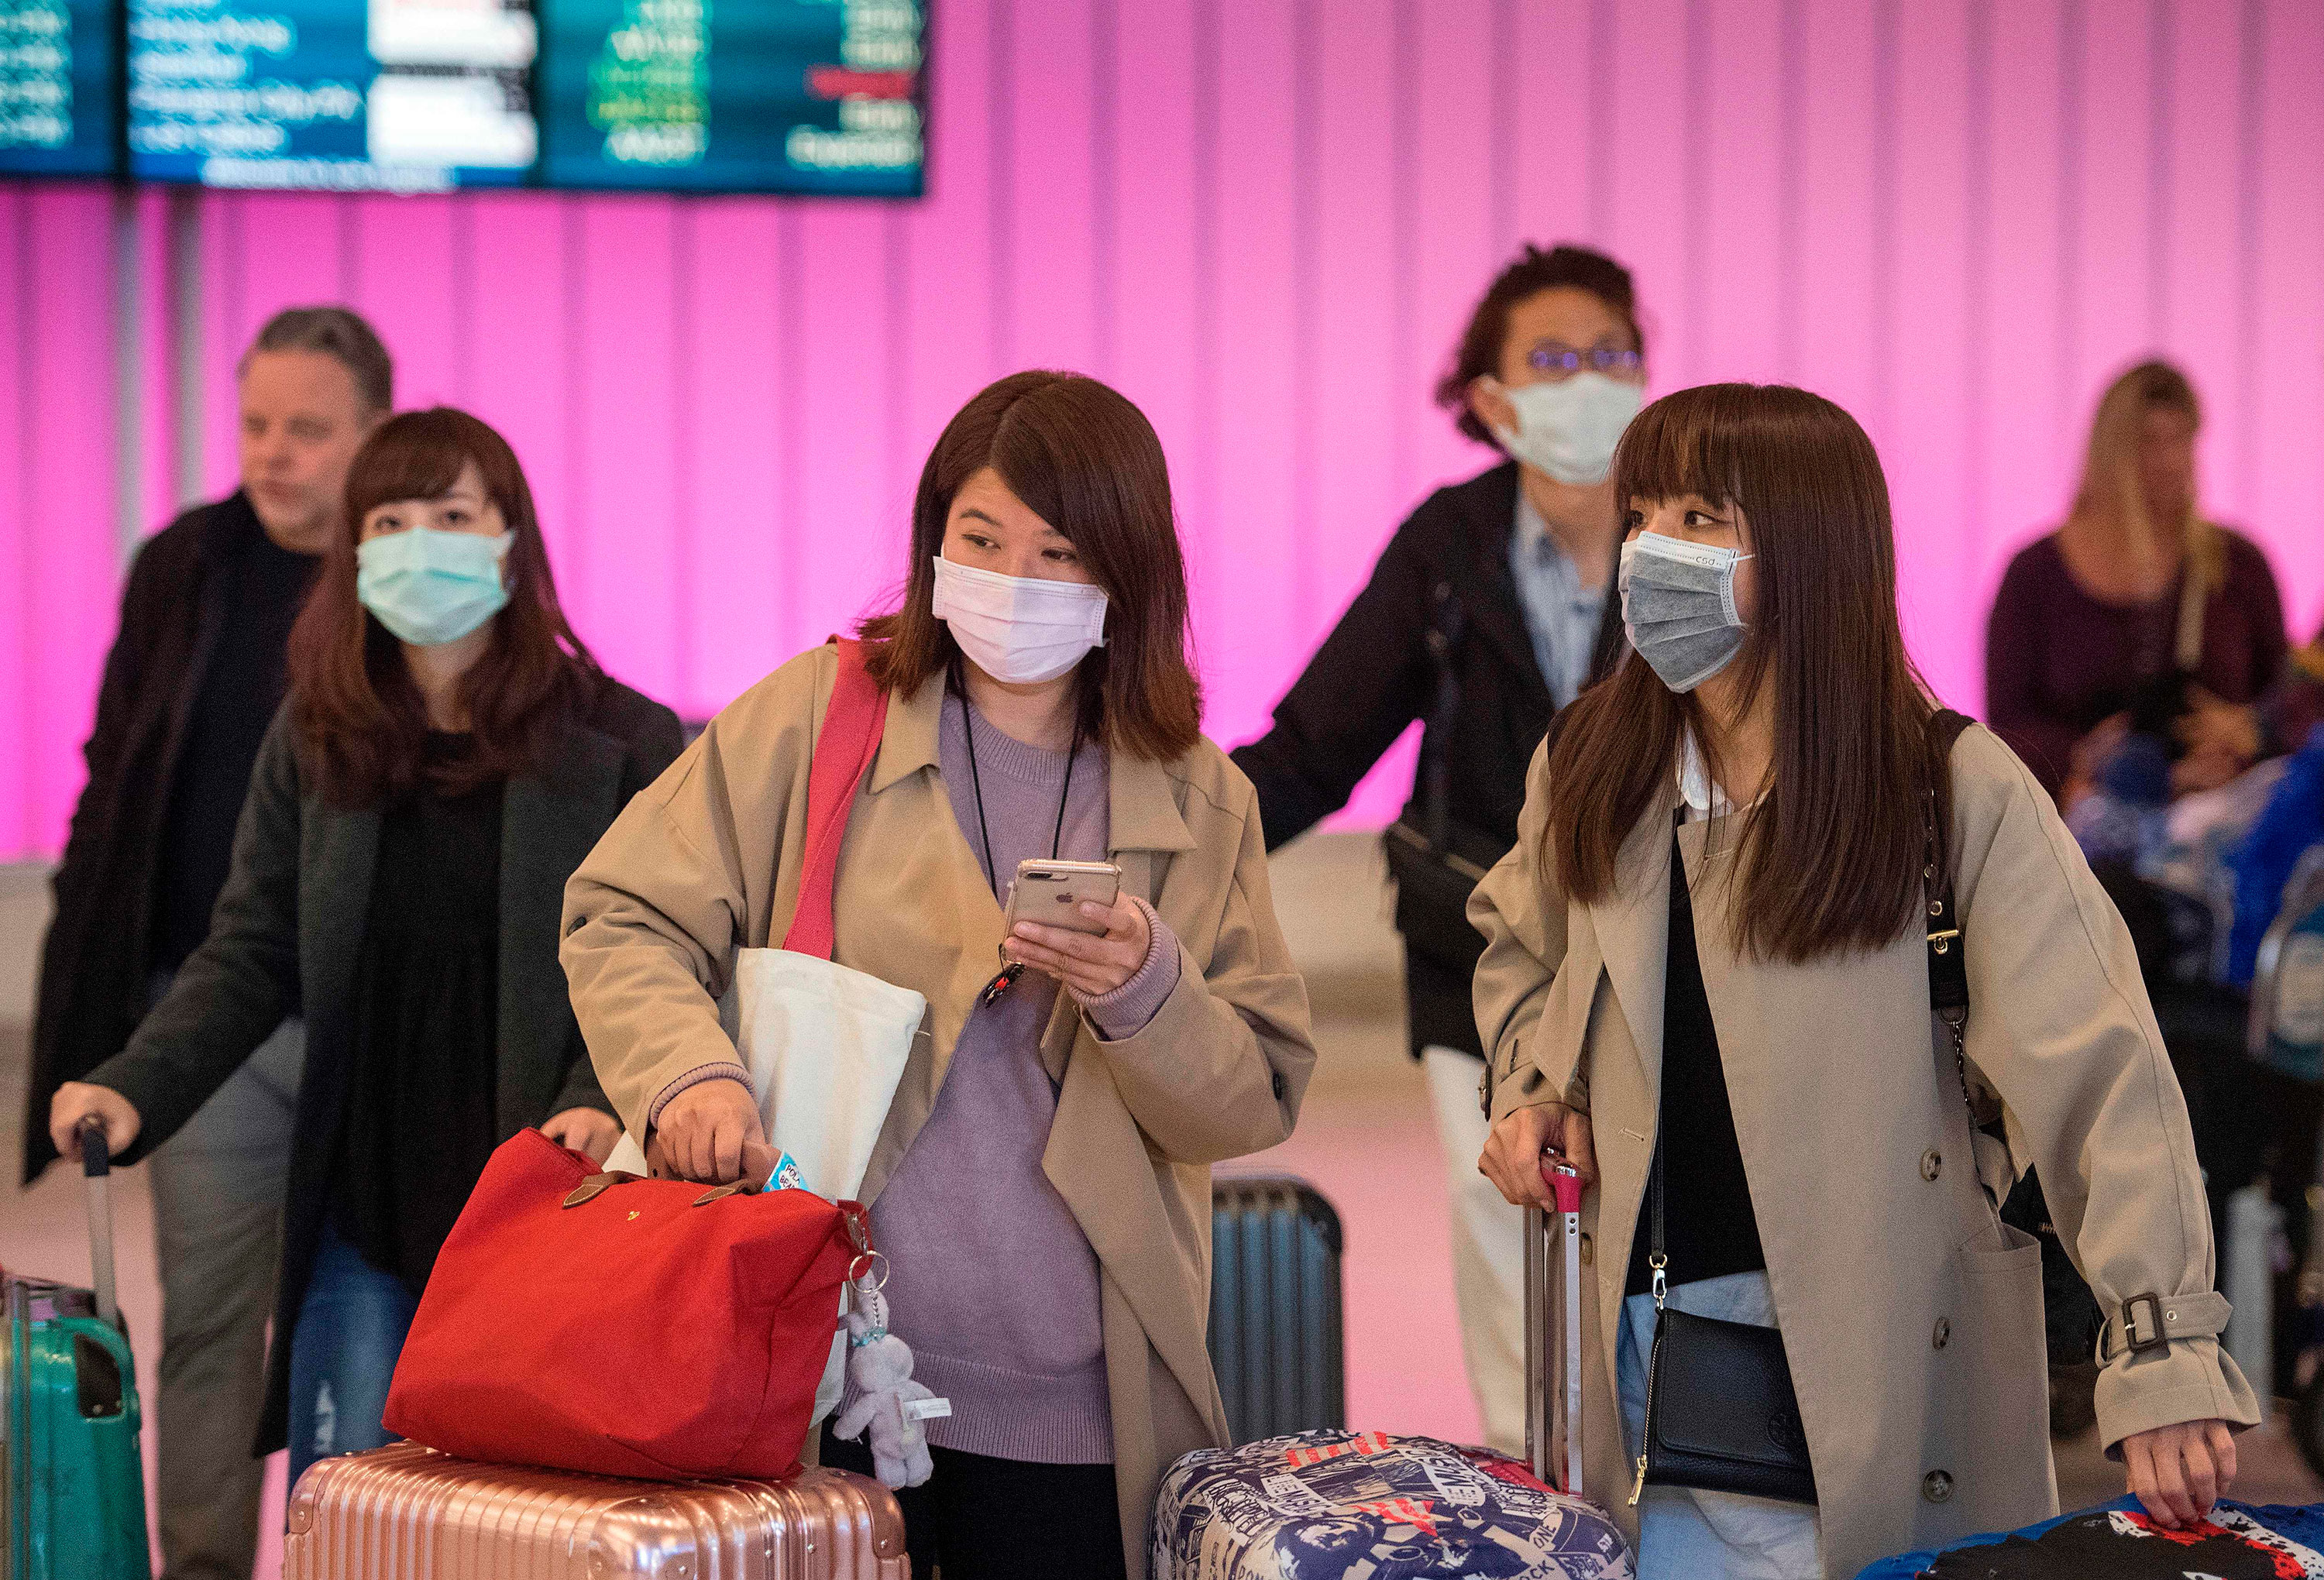 TOPSHOT - Passengers at the Los Angeles International Airport wear protective masks on January 22.